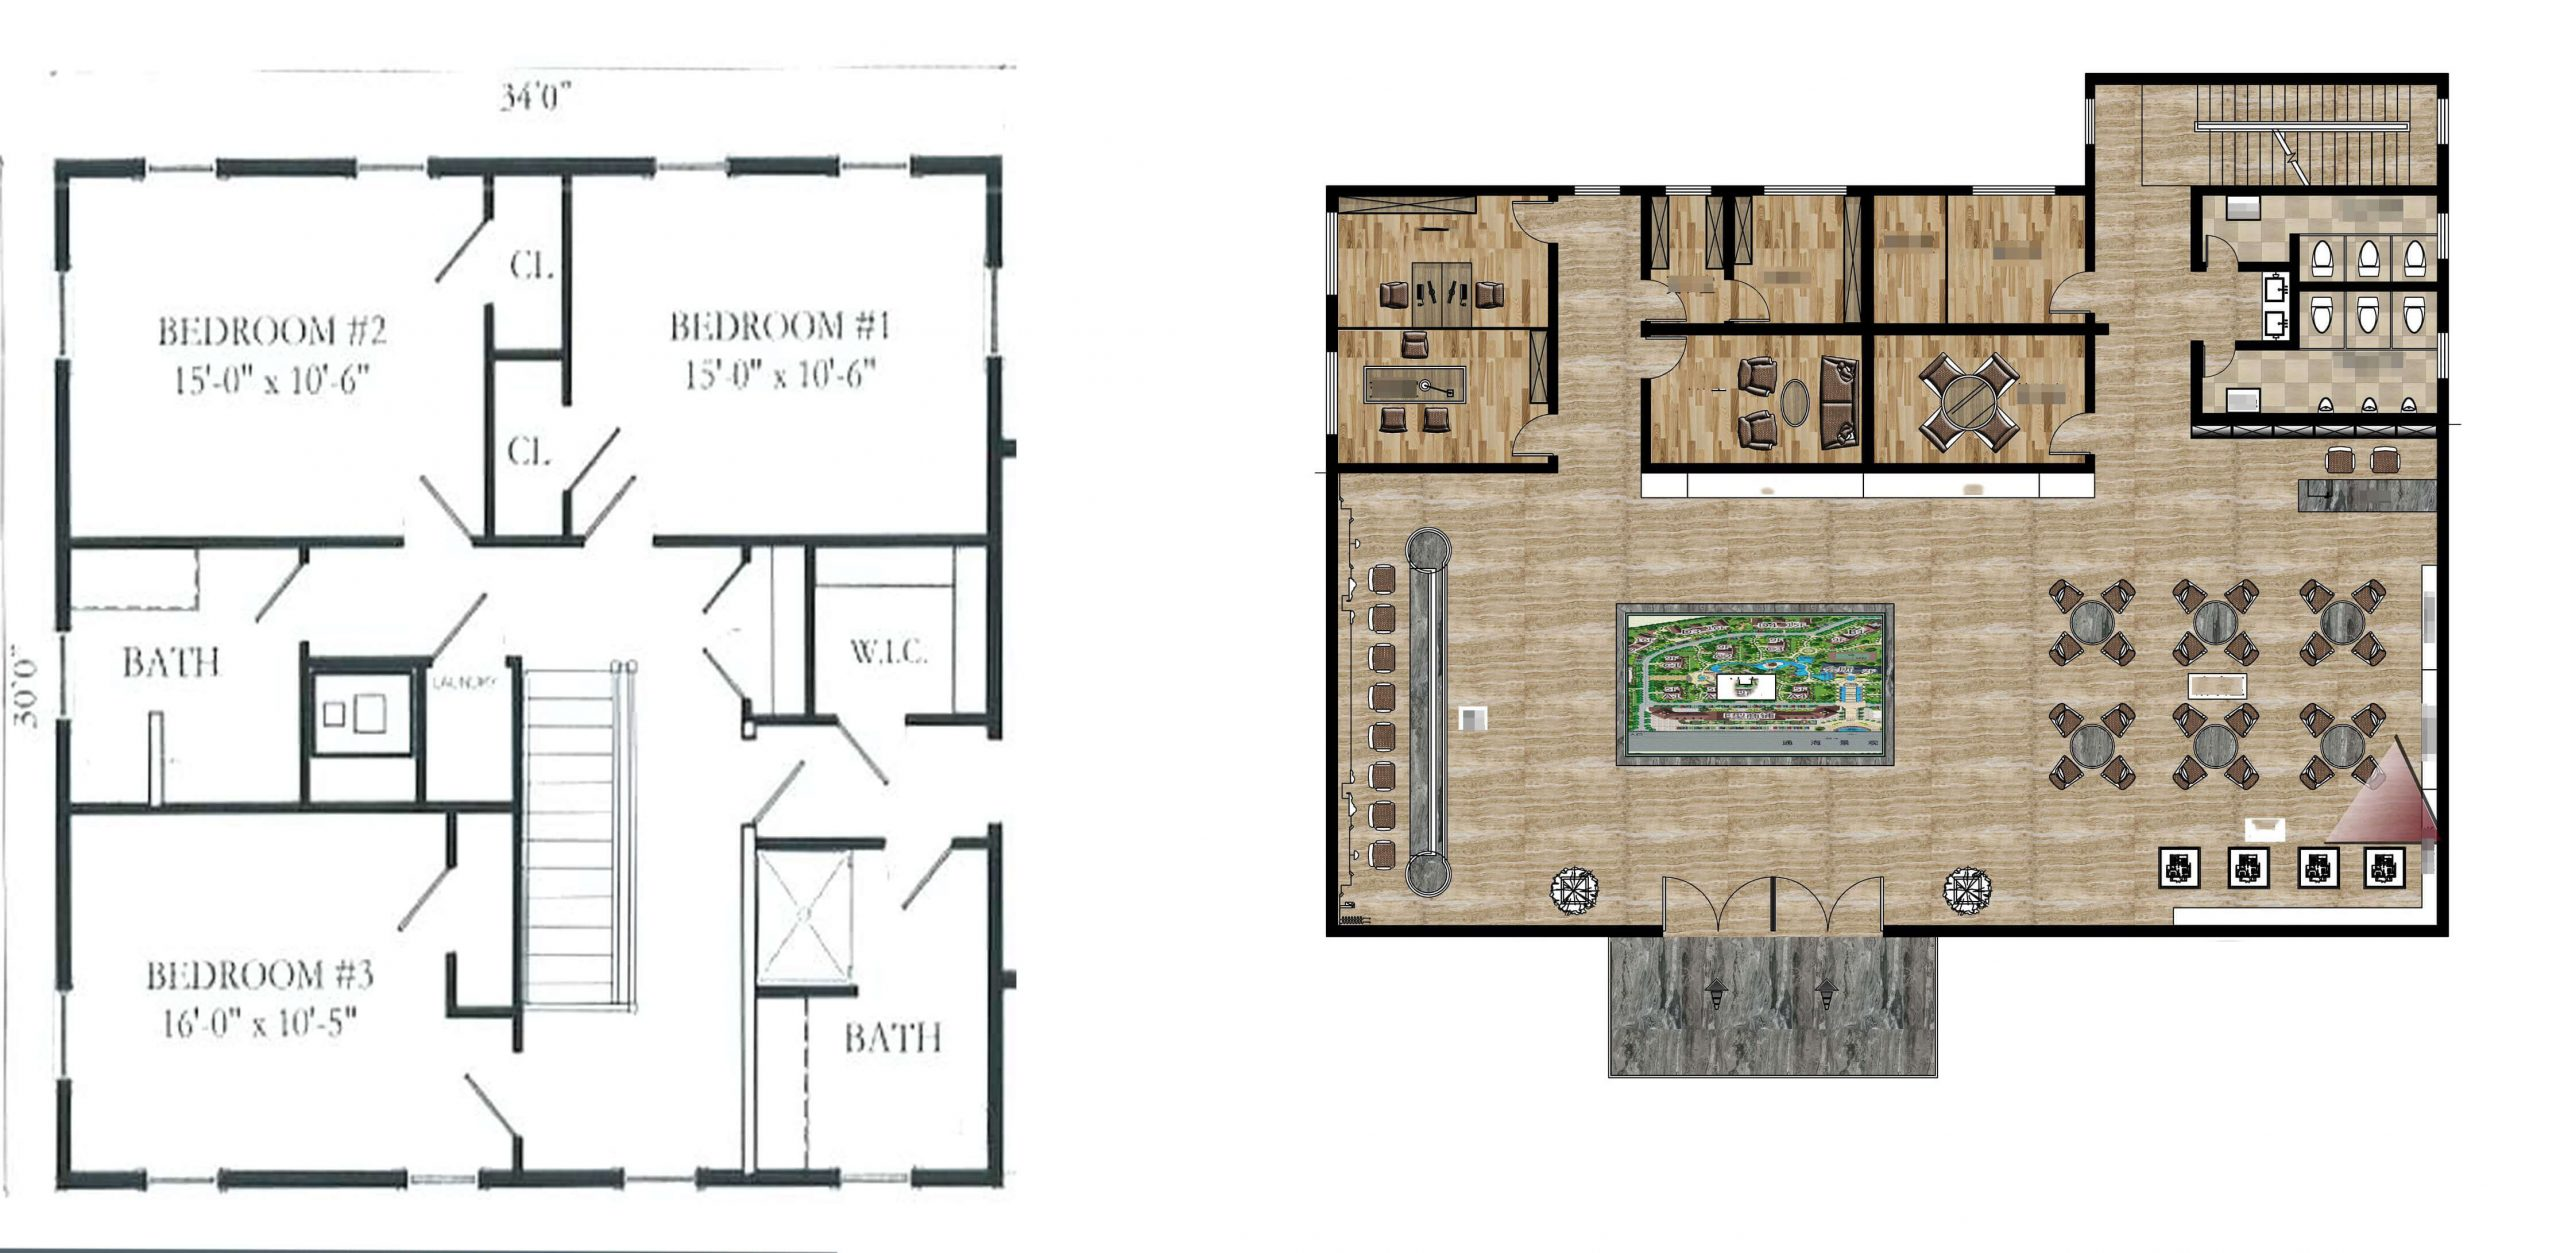 There are a few things you need to know about interior simple floor plans